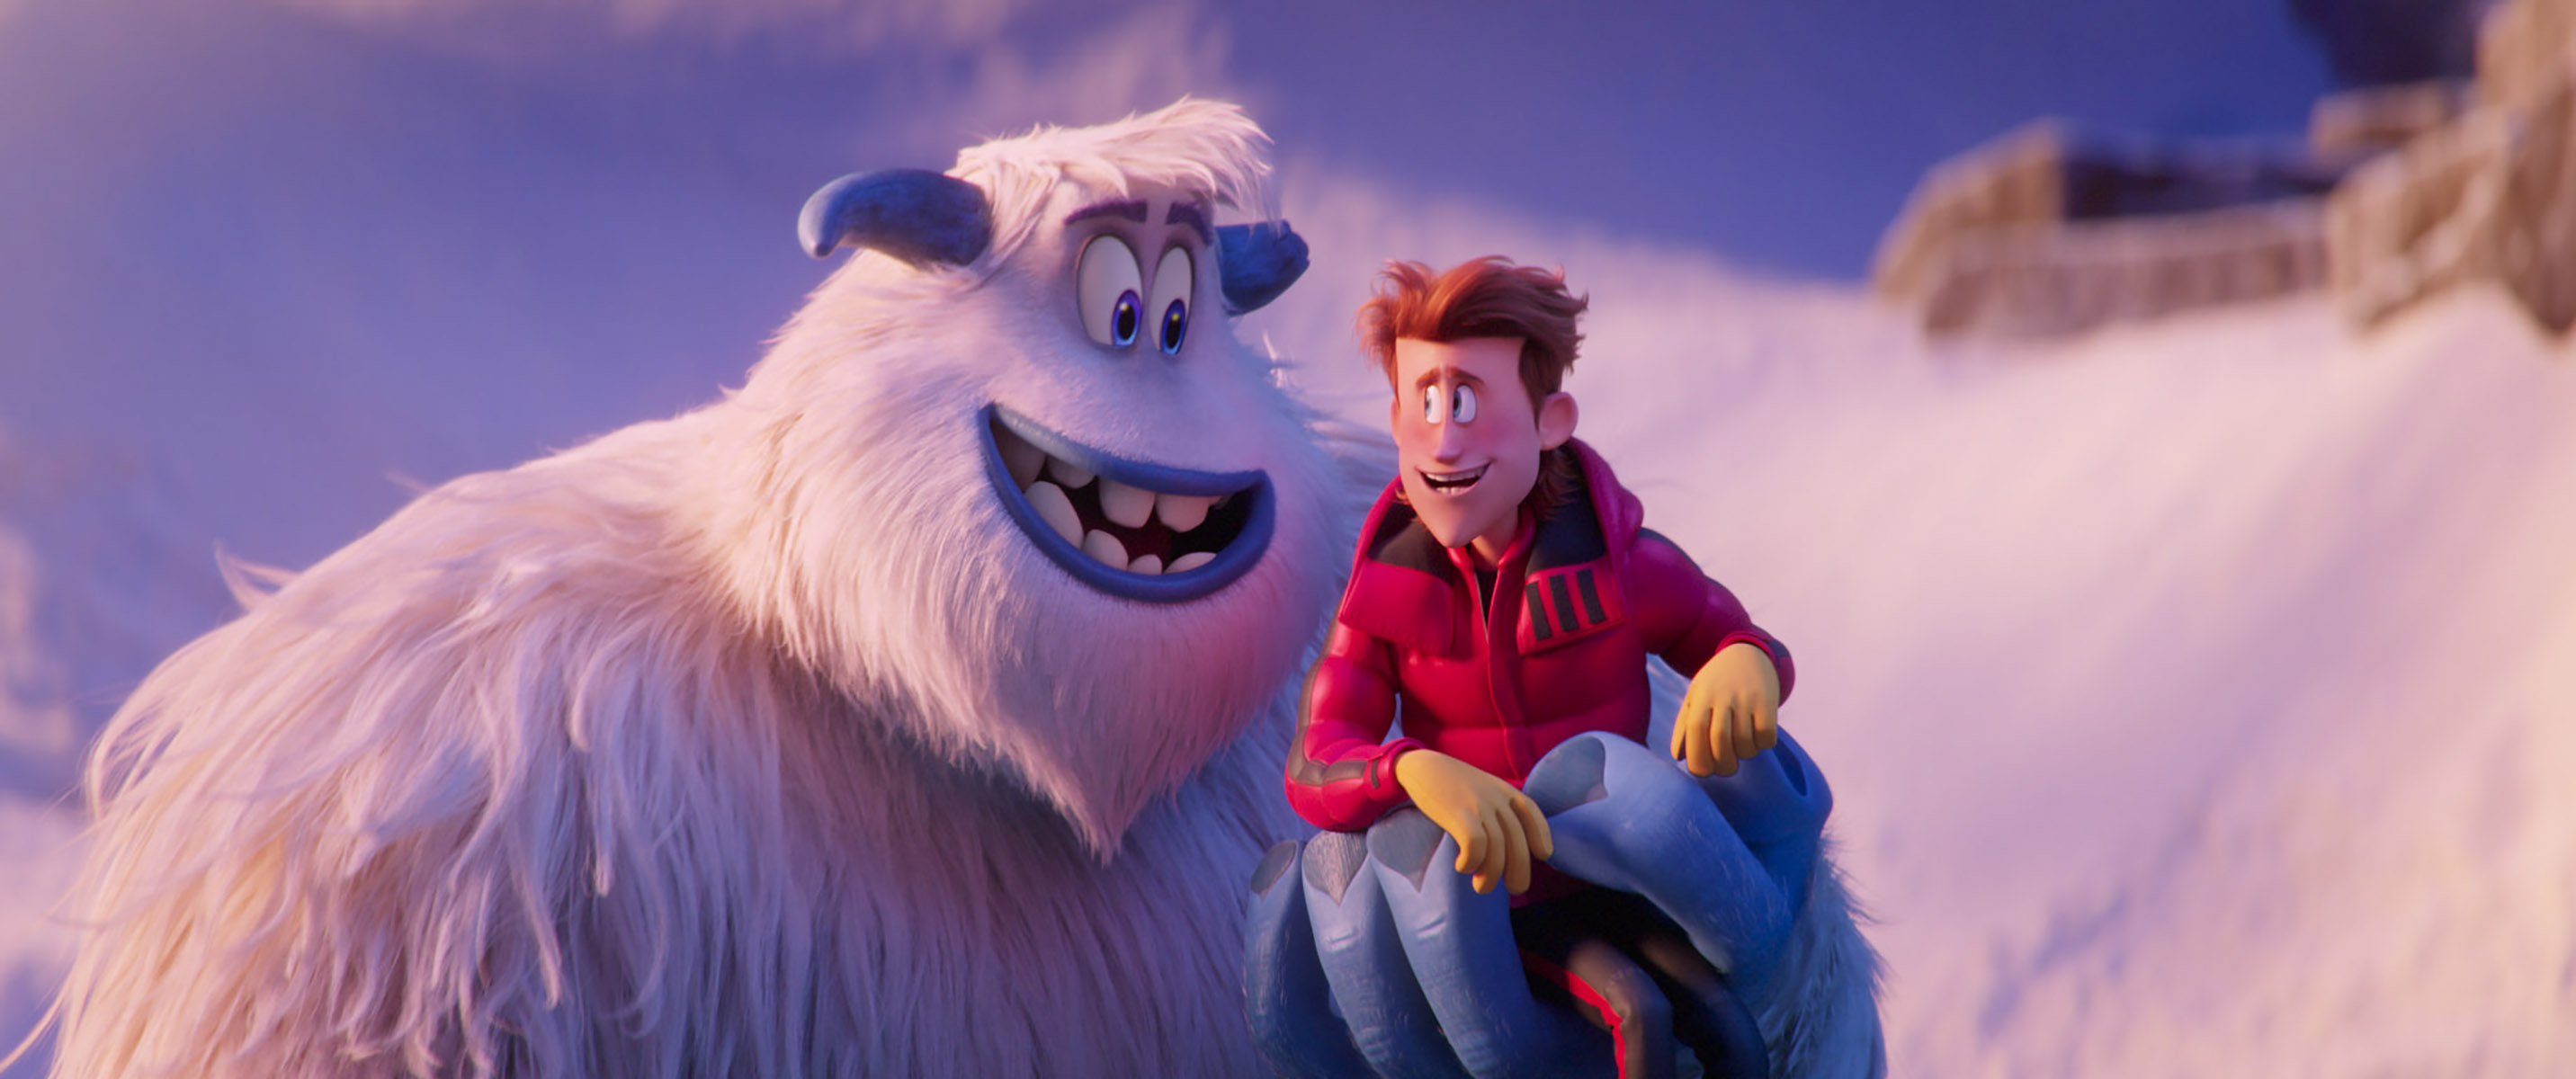 Snow monster adventure' reveals' apples and oranges' trailer growler 'snowflake talk' wants to laugh